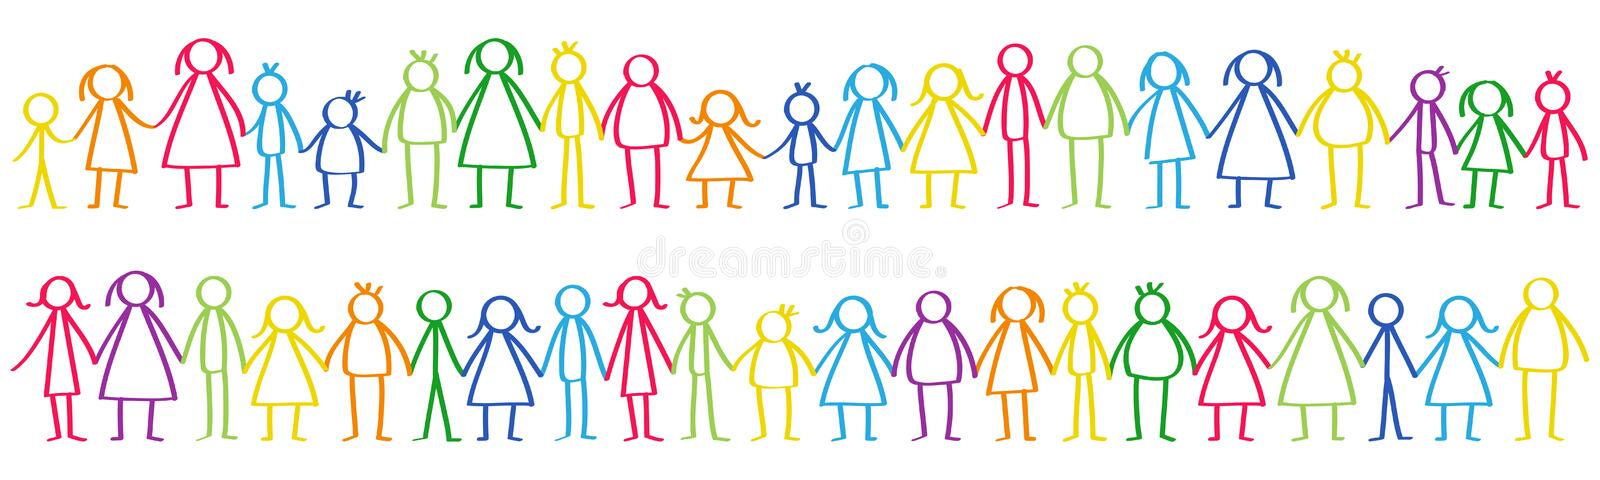 Vector illustration of colorful male and female stick figures standing in rows holding hands vector illustration